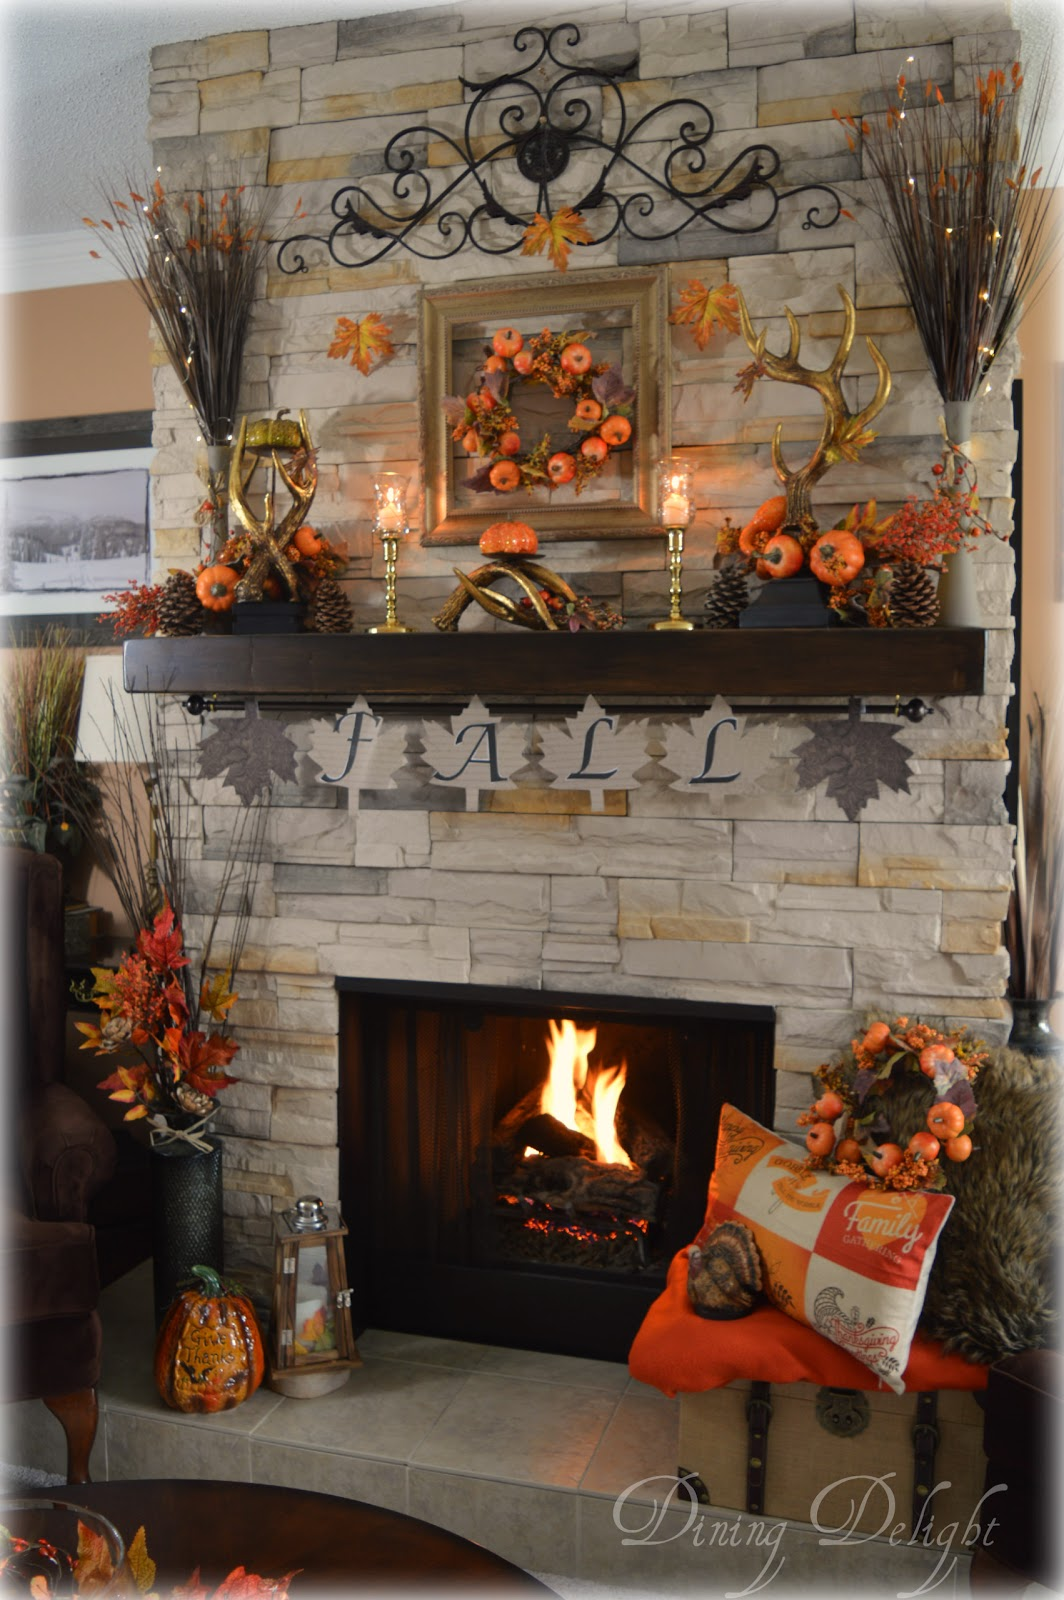 Fall Fireplace Mantel Decorating Ideas: Dining Delight: Pumpkins & Antlers Fall Mantel